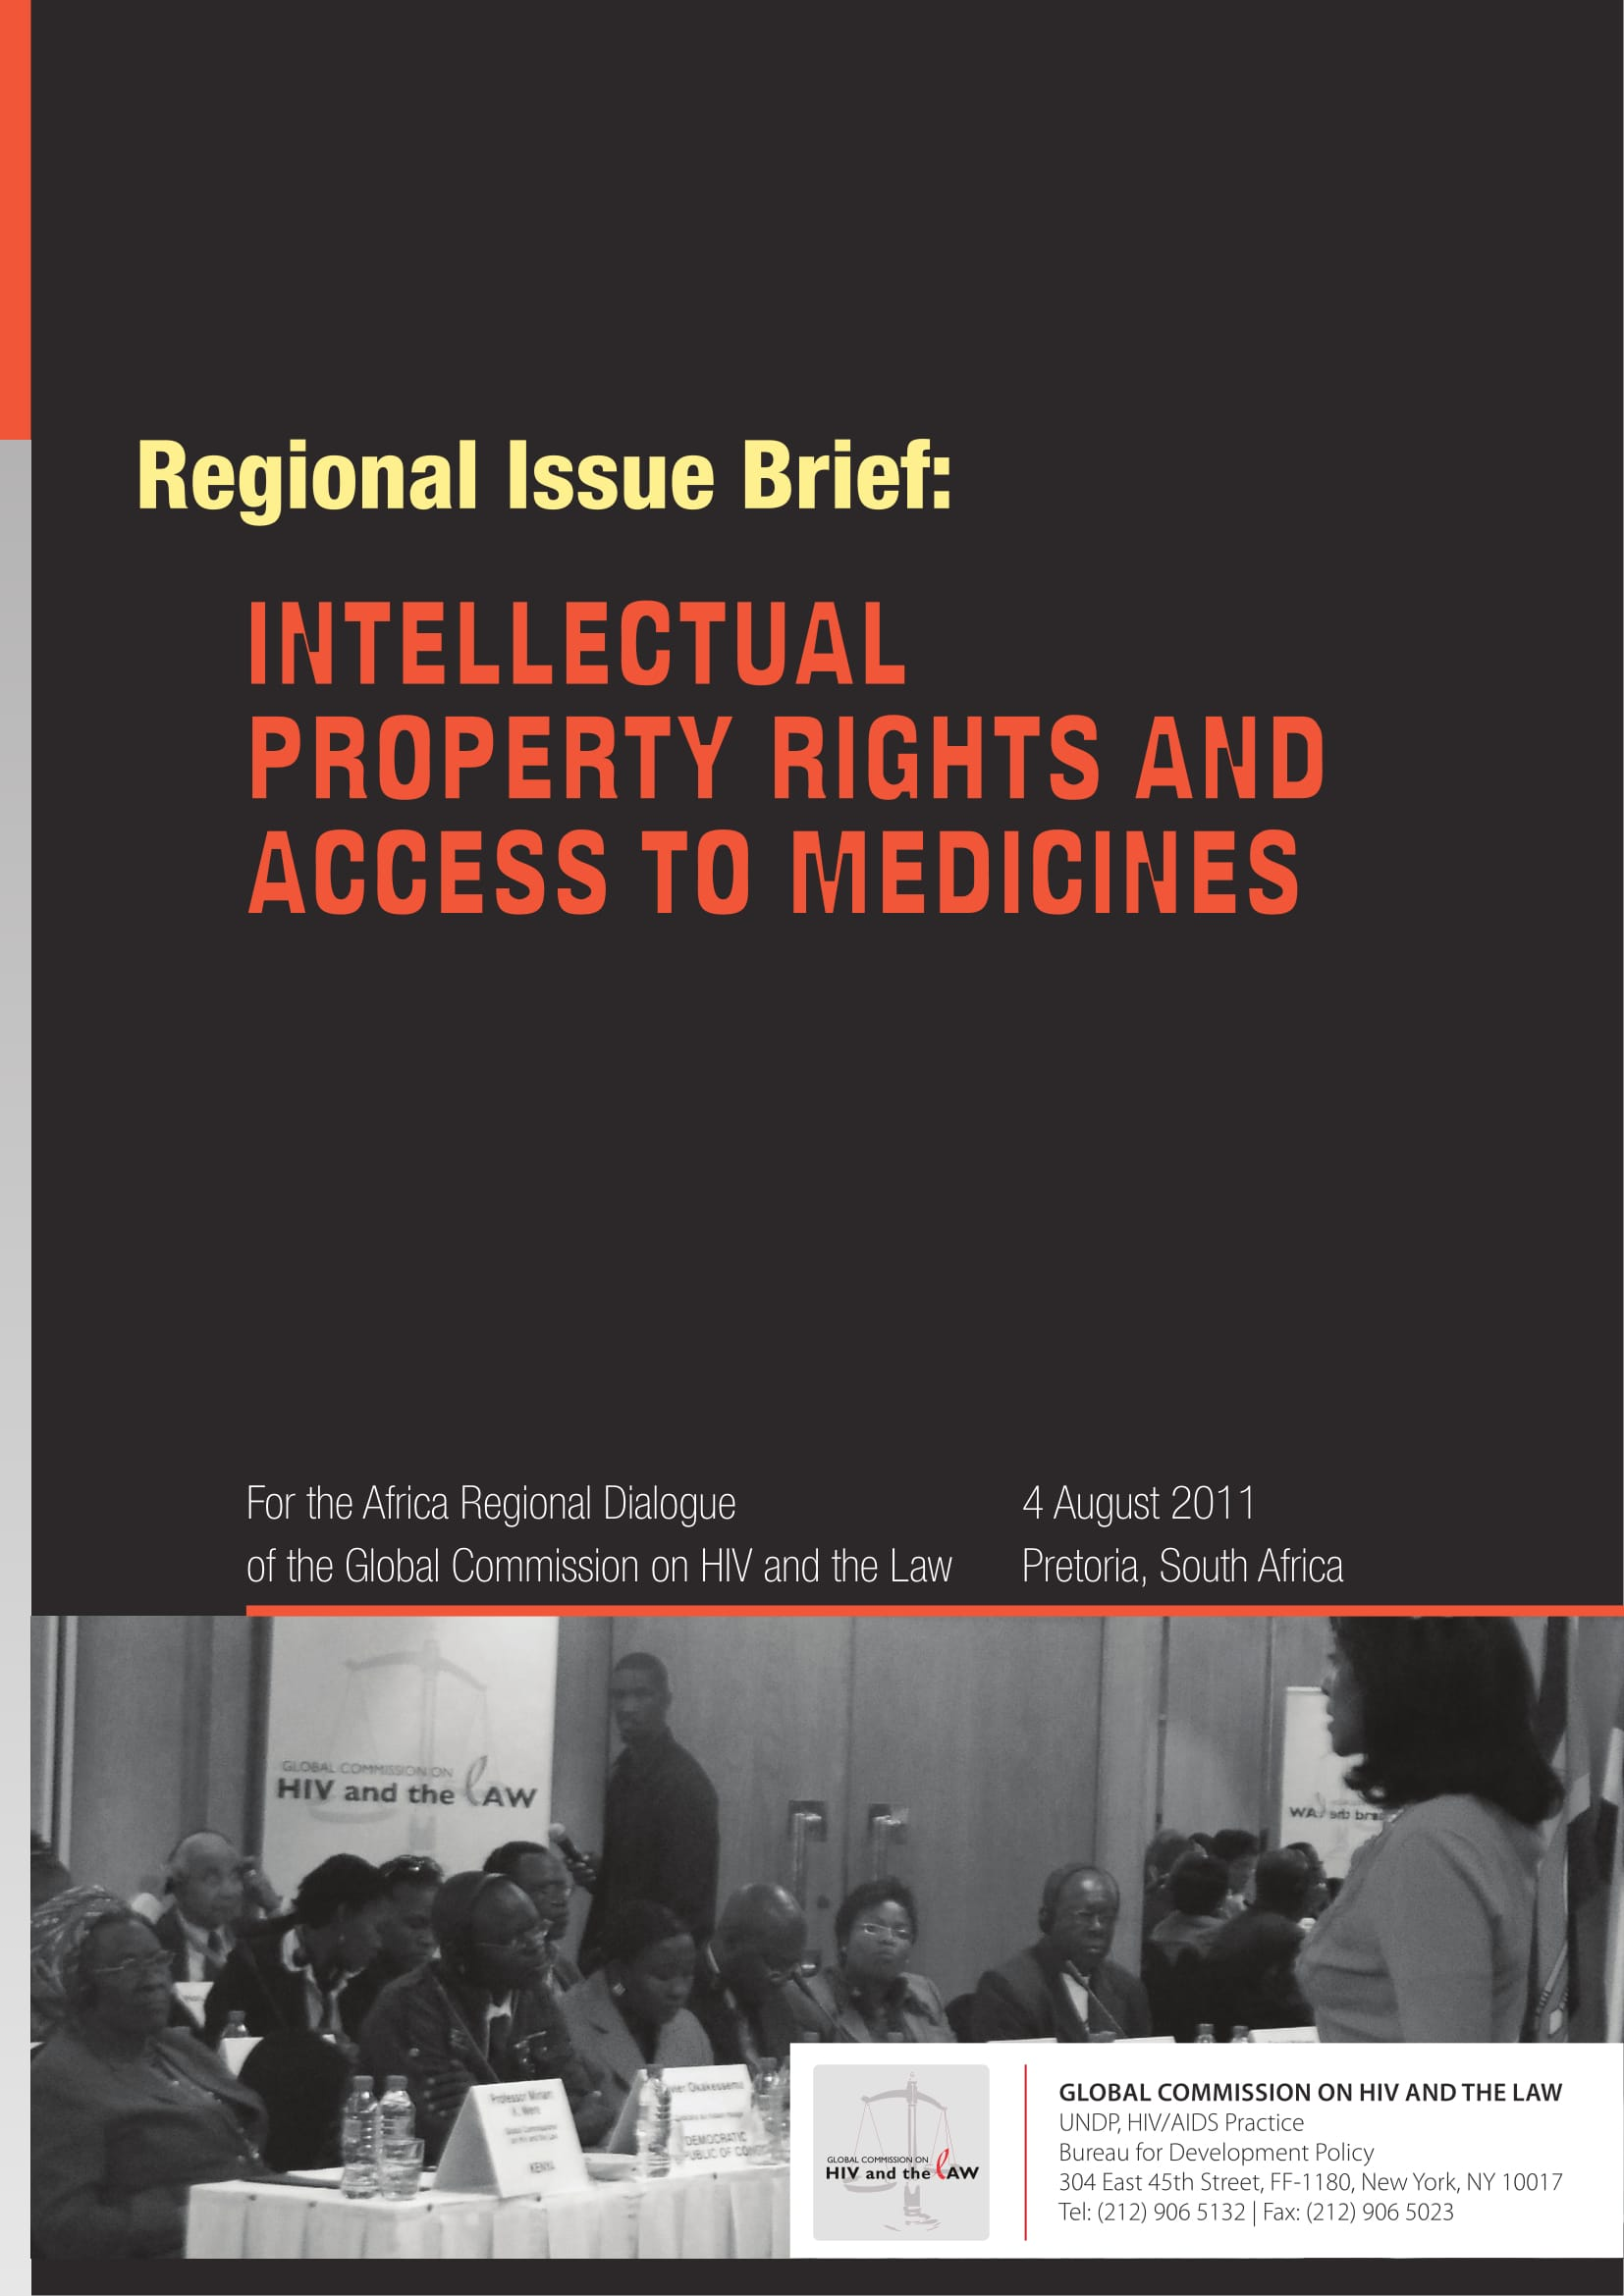 Regional issues brief: Intellectual property rights and access to medicines